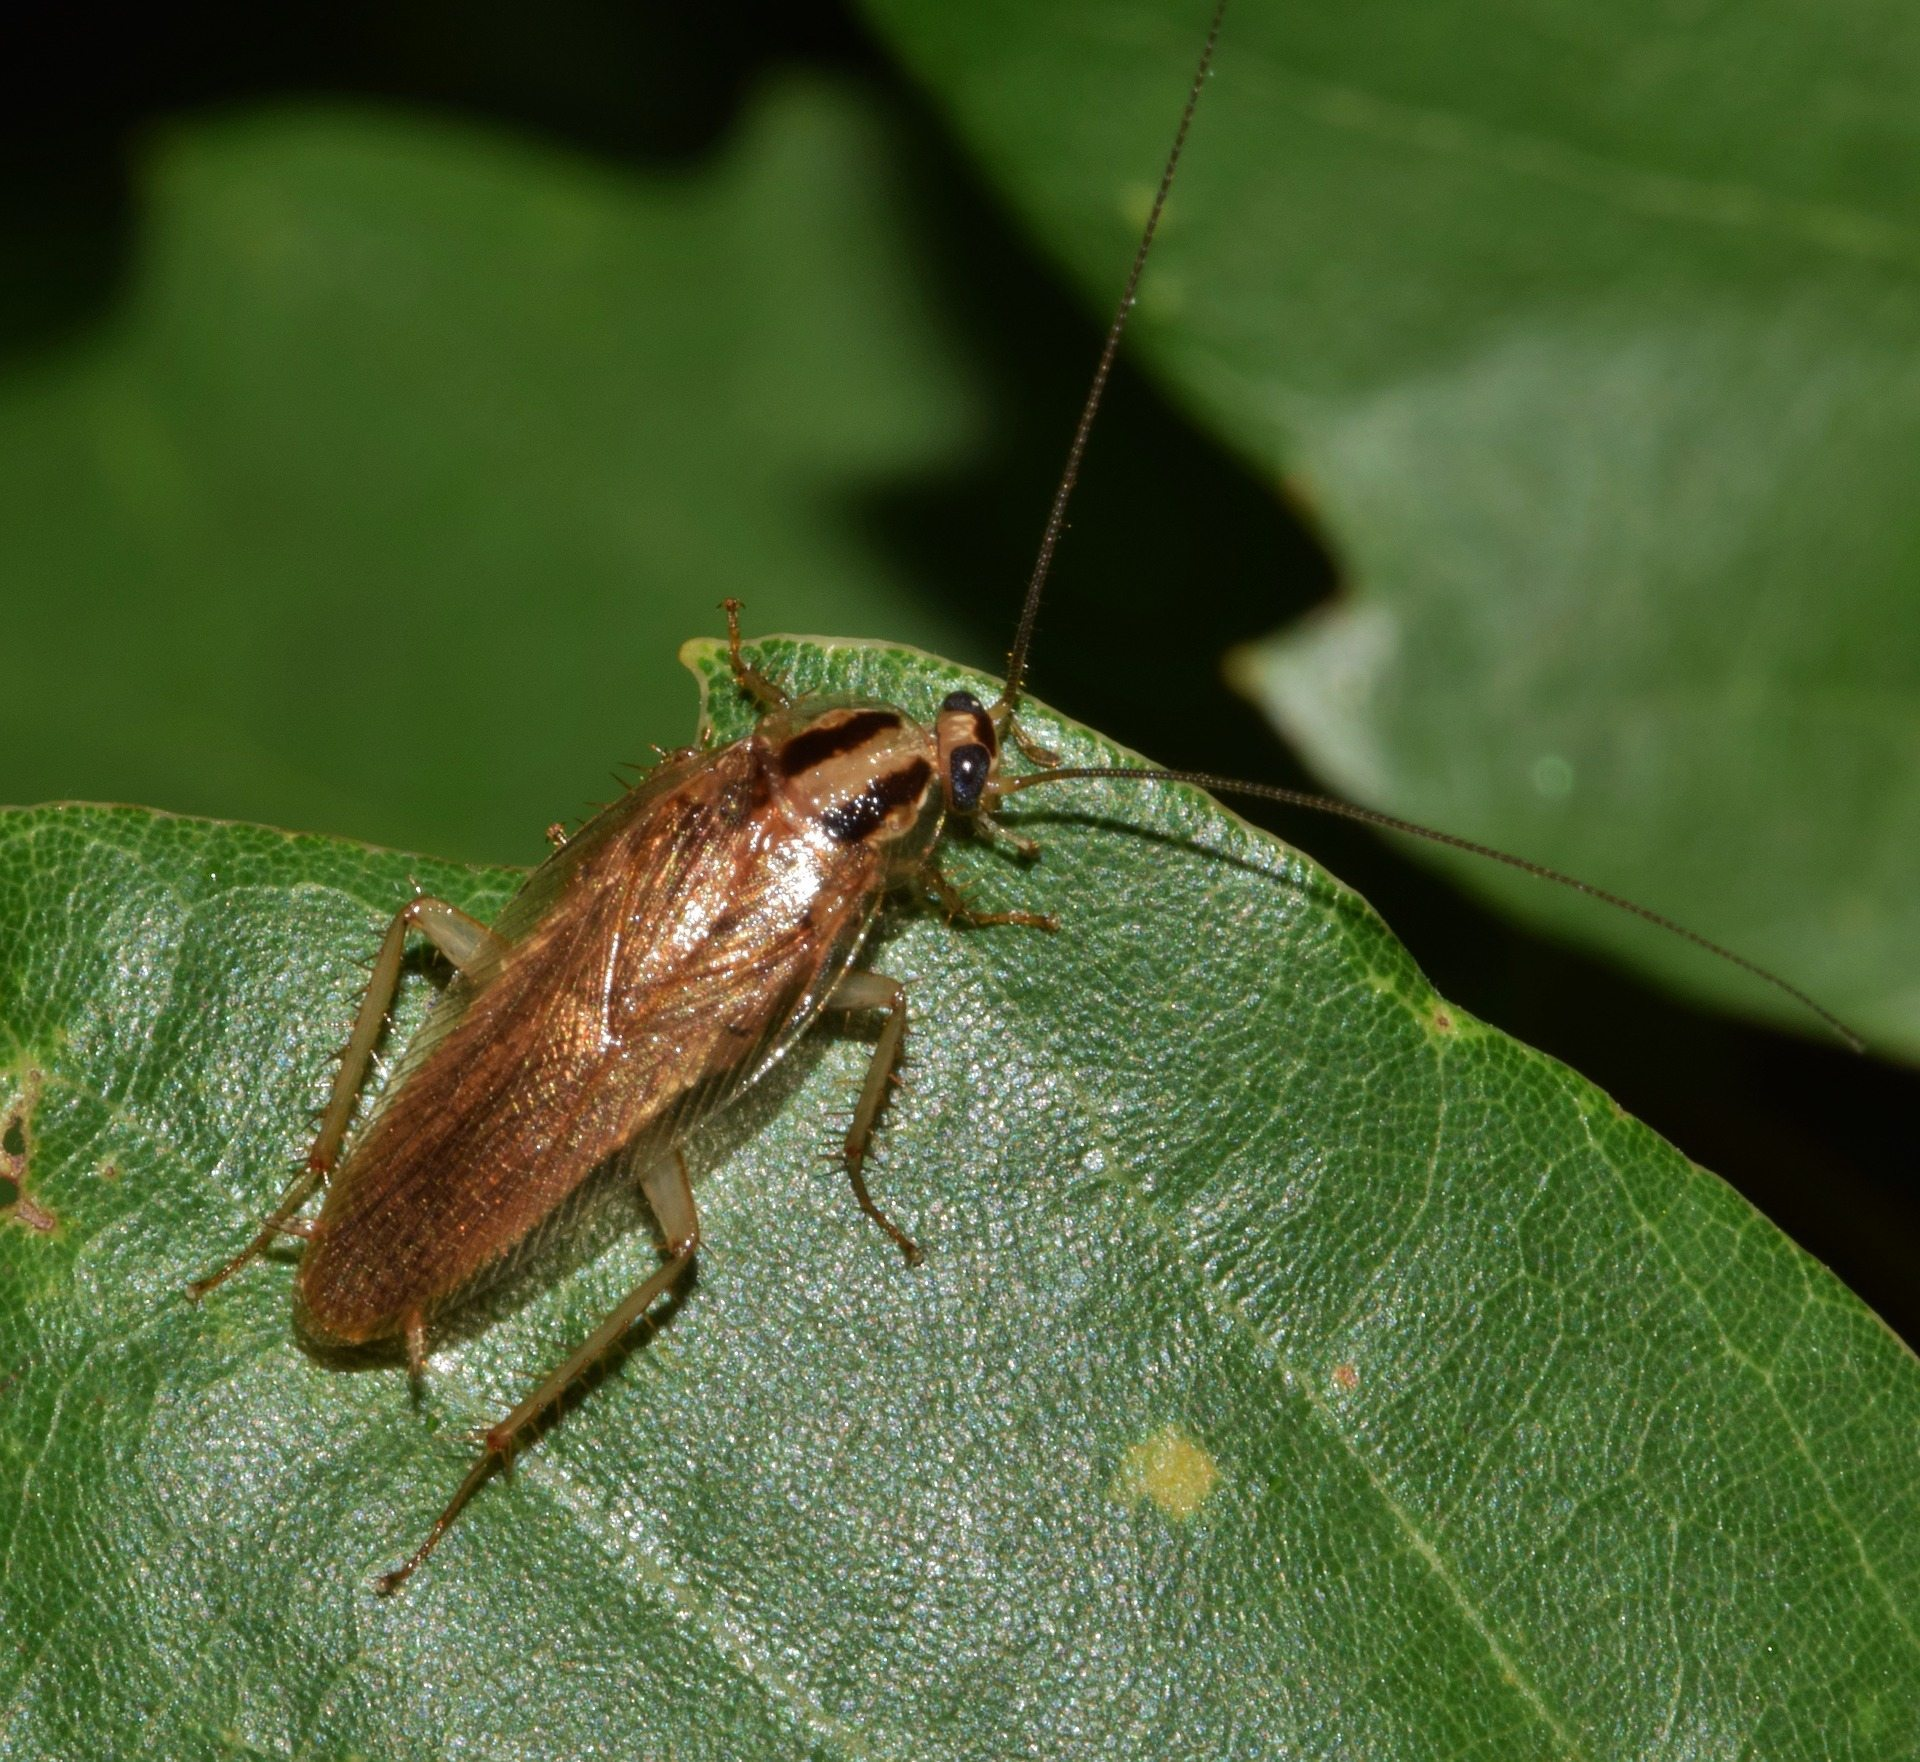 a cockroach on a leaf